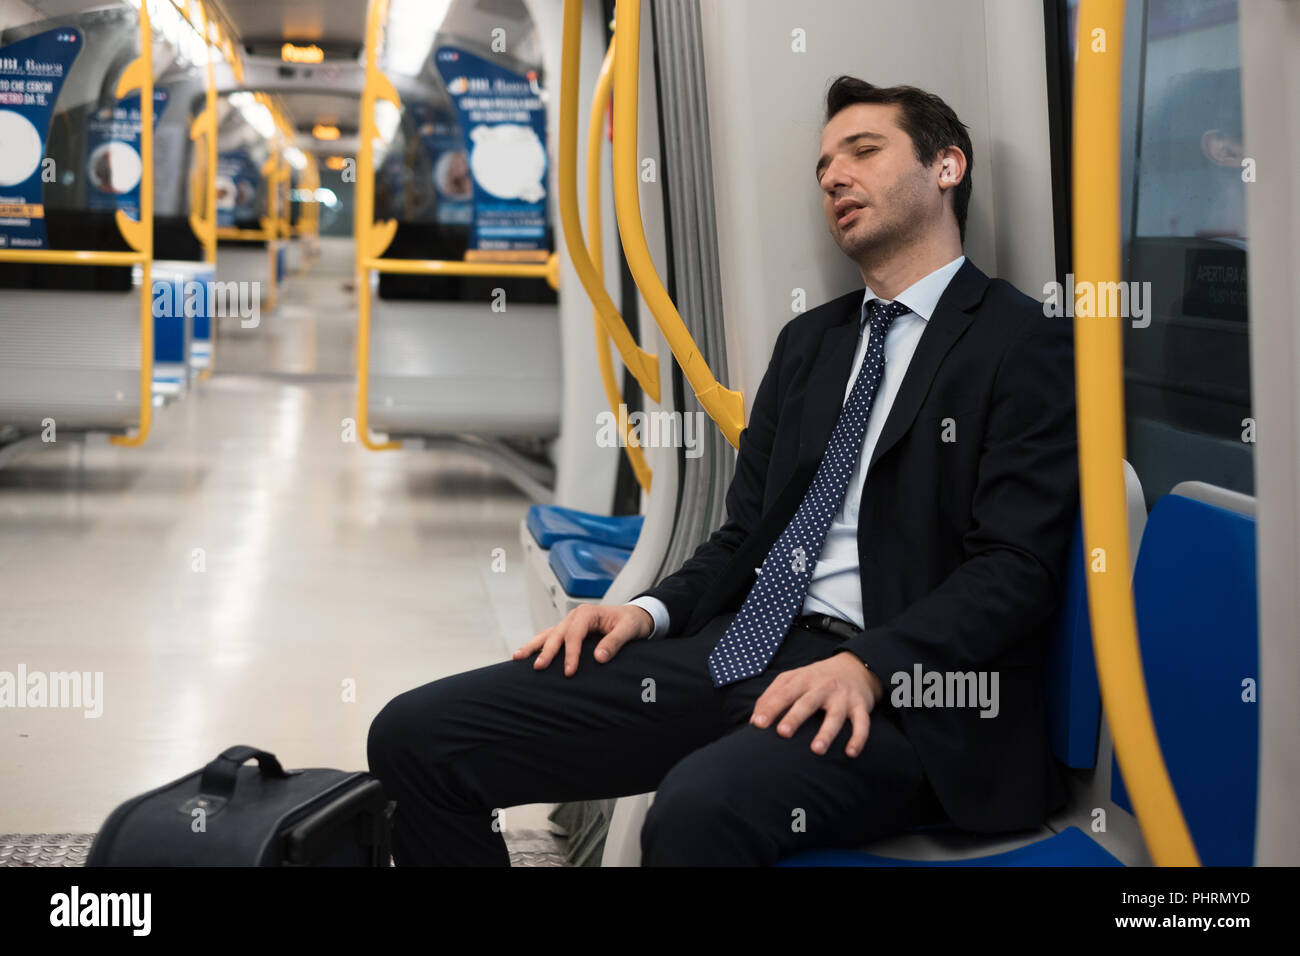 Exhausted commuter portrait sleeping on metro underground - Stock Image